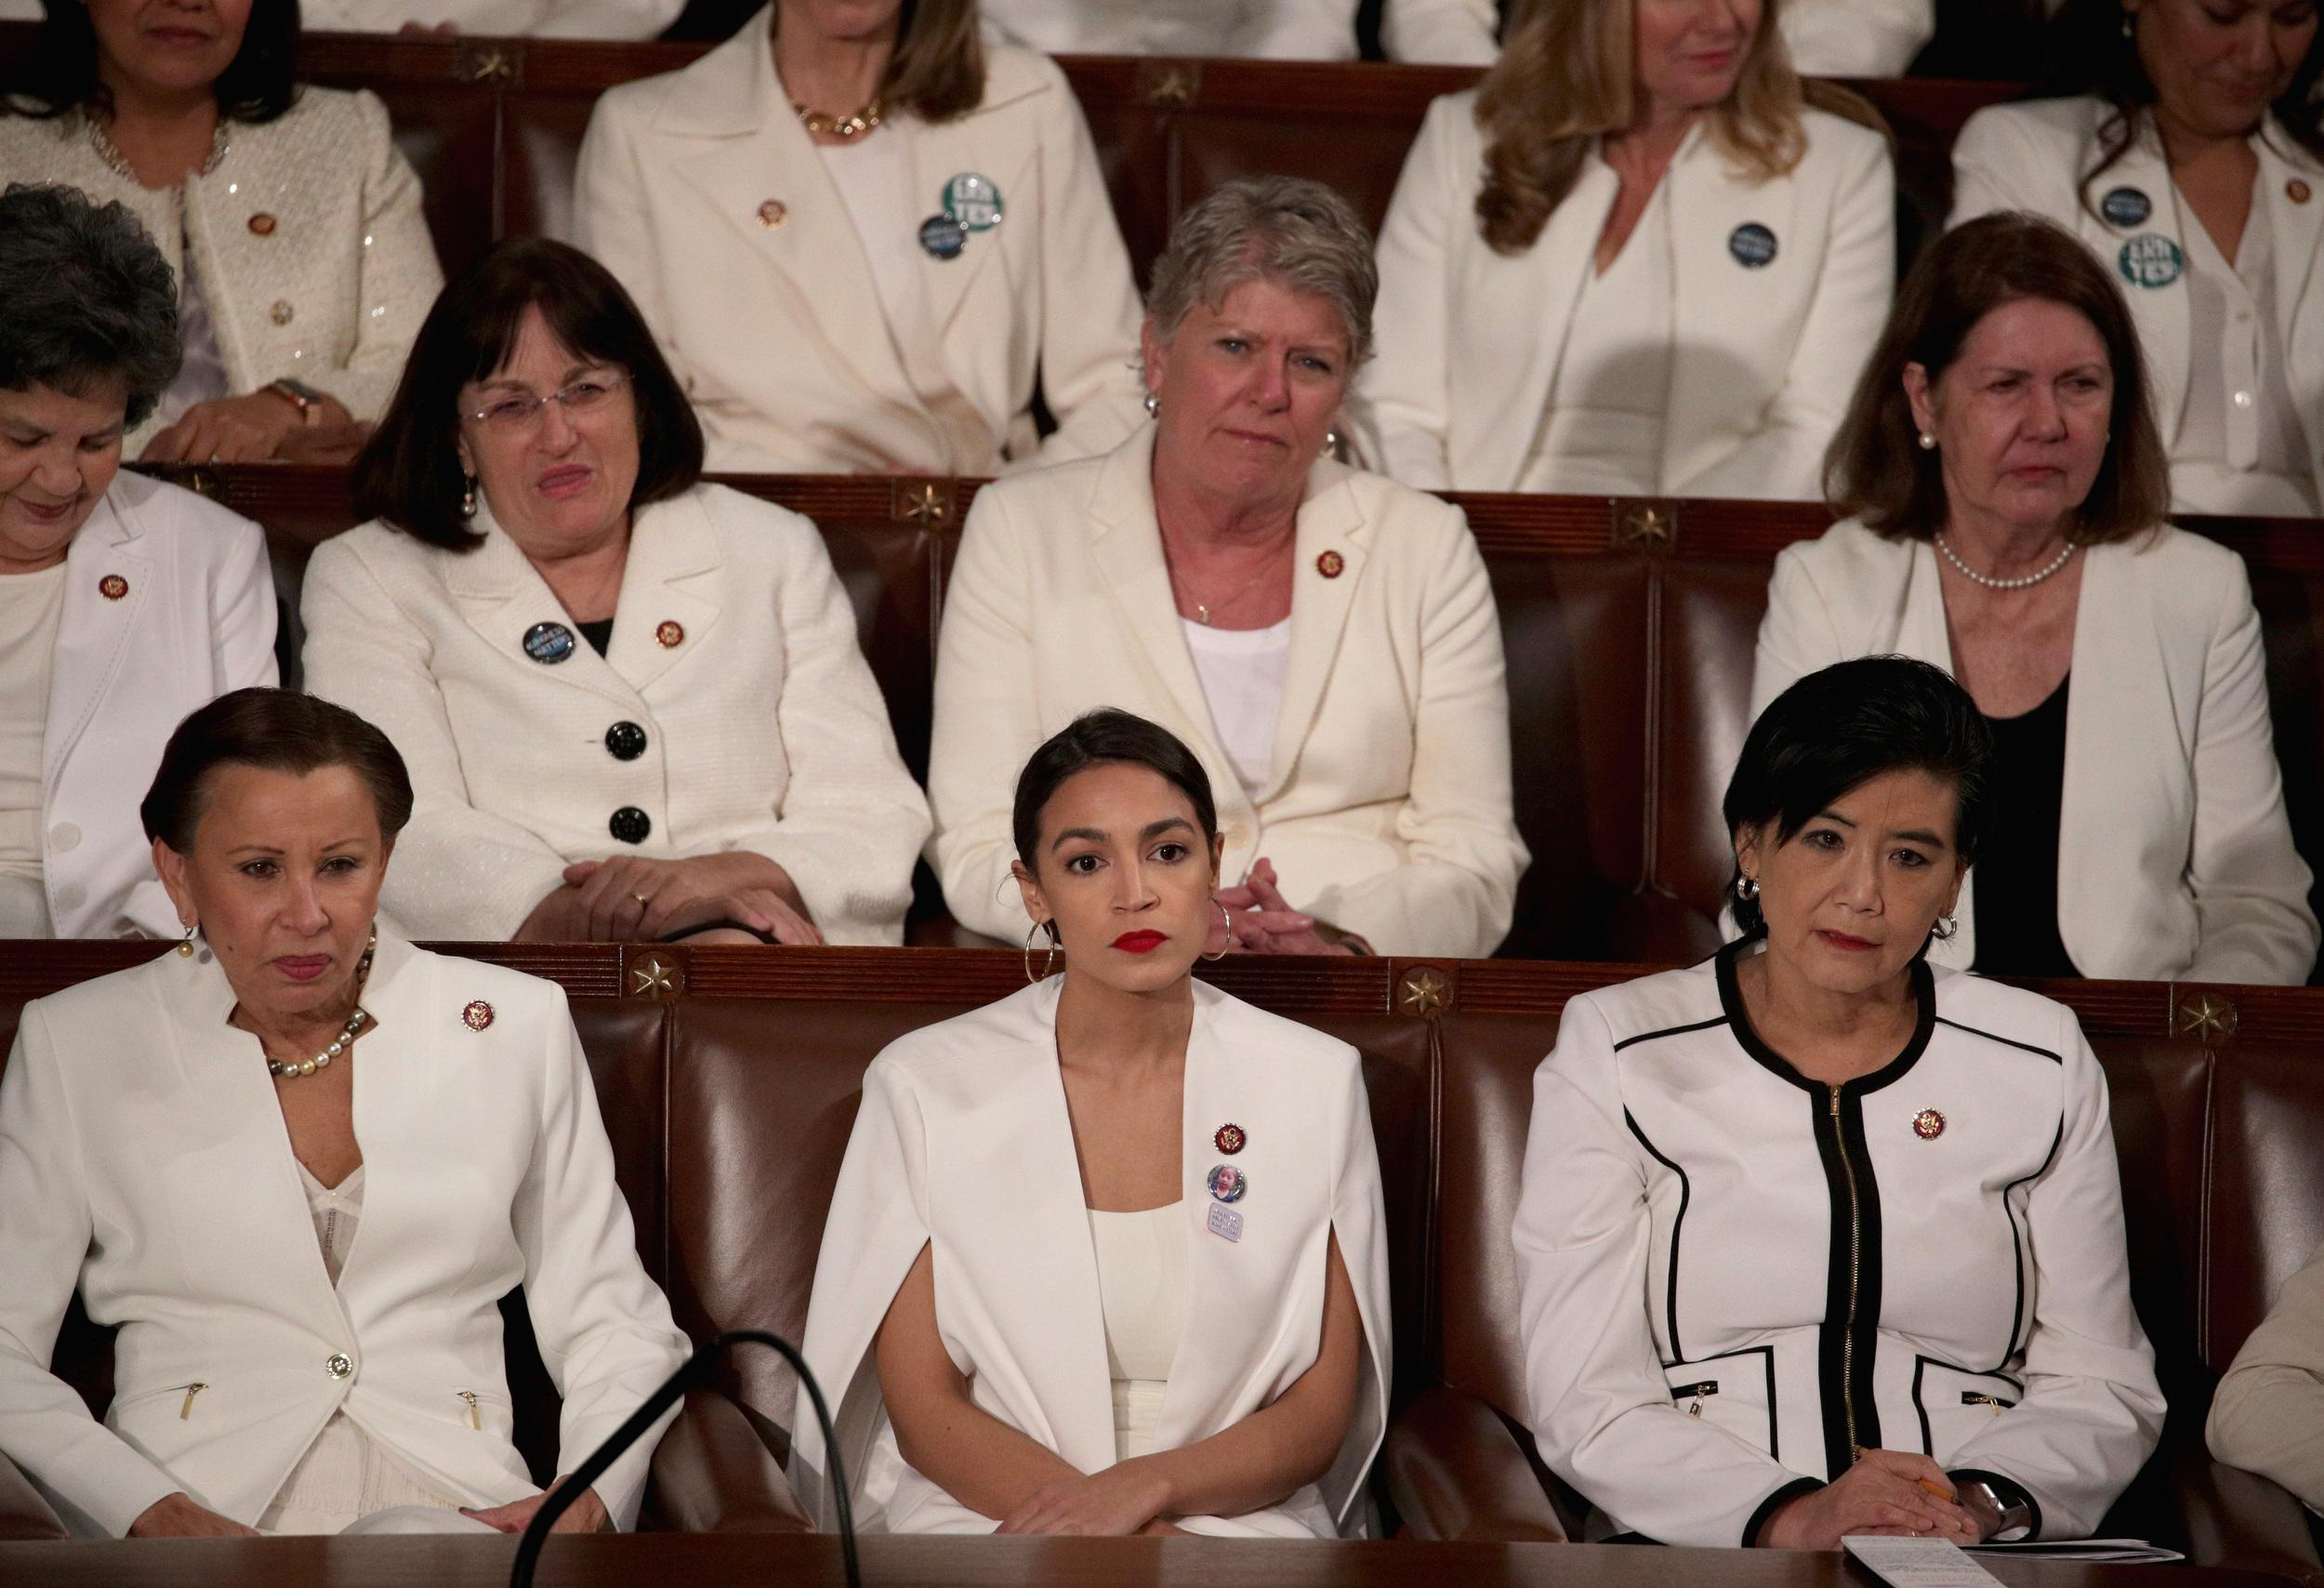 WASHINGTON, DC - FEBRUARY 05:  Rep. Alexandria Ocasio-Cortez (D-NY) watches President Donald Trump's State of the Union address in the chamber of the U.S. House of Representatives at the U.S. Capitol Building on February 5, 2019 in Washington, DC. A group of female Democratic lawmakers chose to wear white to the speech in solidarity with women and a nod to the suffragette movement.  (Photo by Alex Wong/Getty Images)